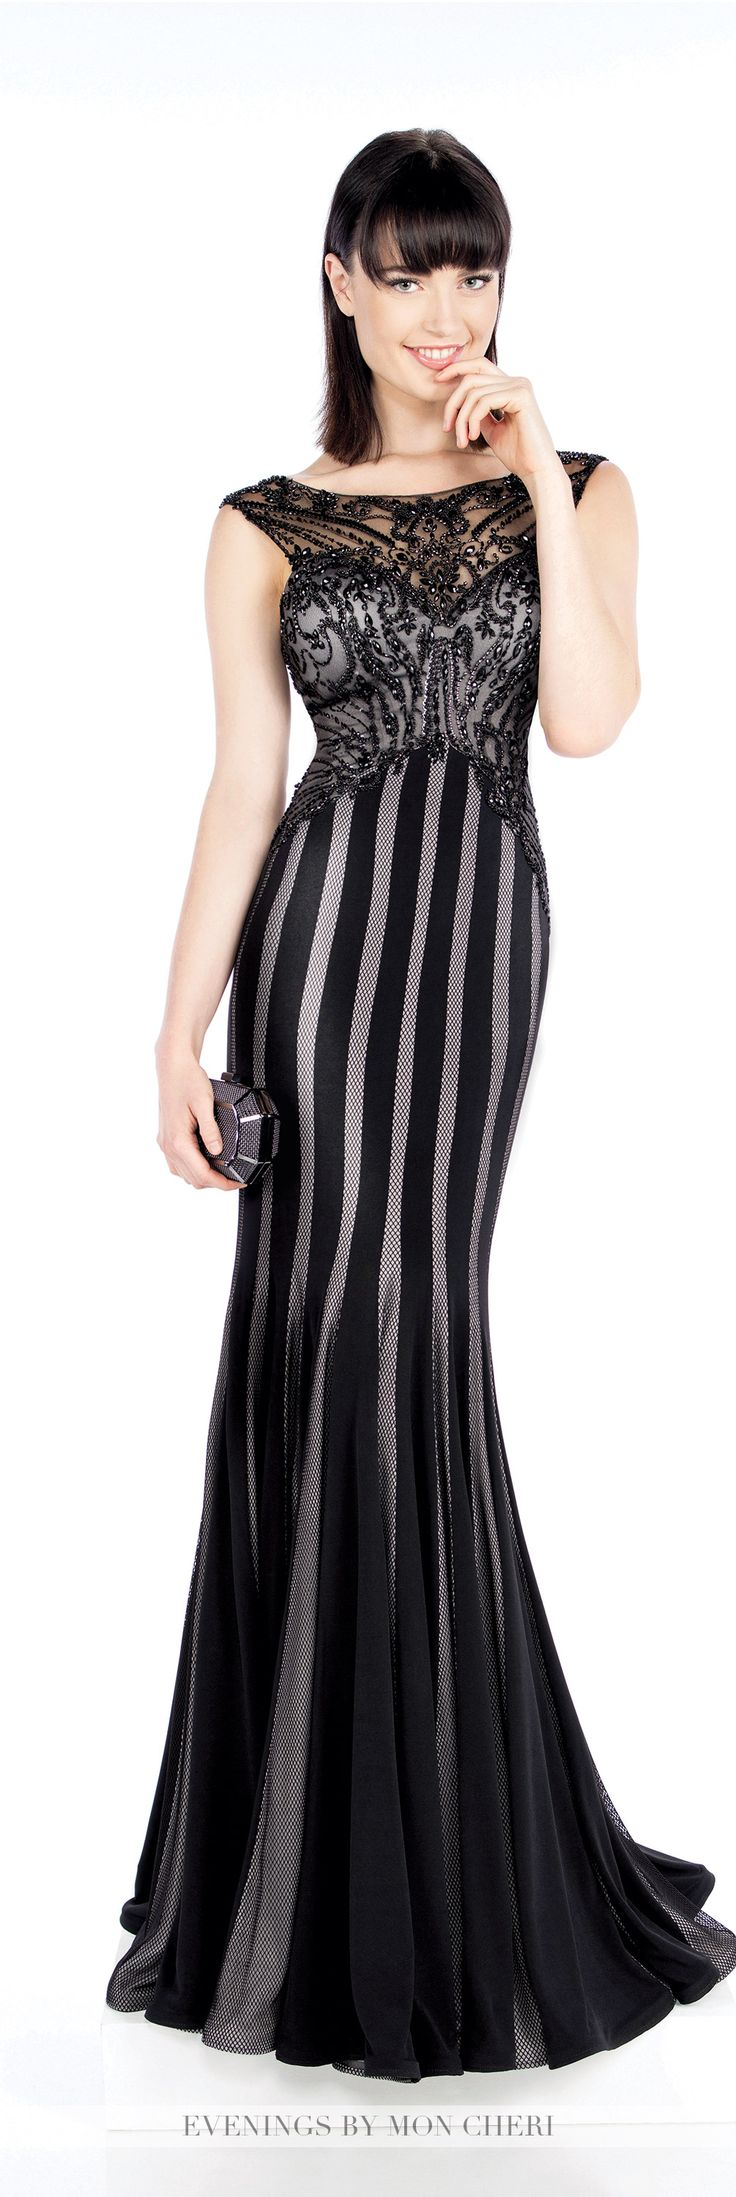 Formal Evening Gowns by Mon Cheri - Fall 2016 - Style No. MCE21609 - black and gray evening dress with beaded illusion bodice and striped skirt